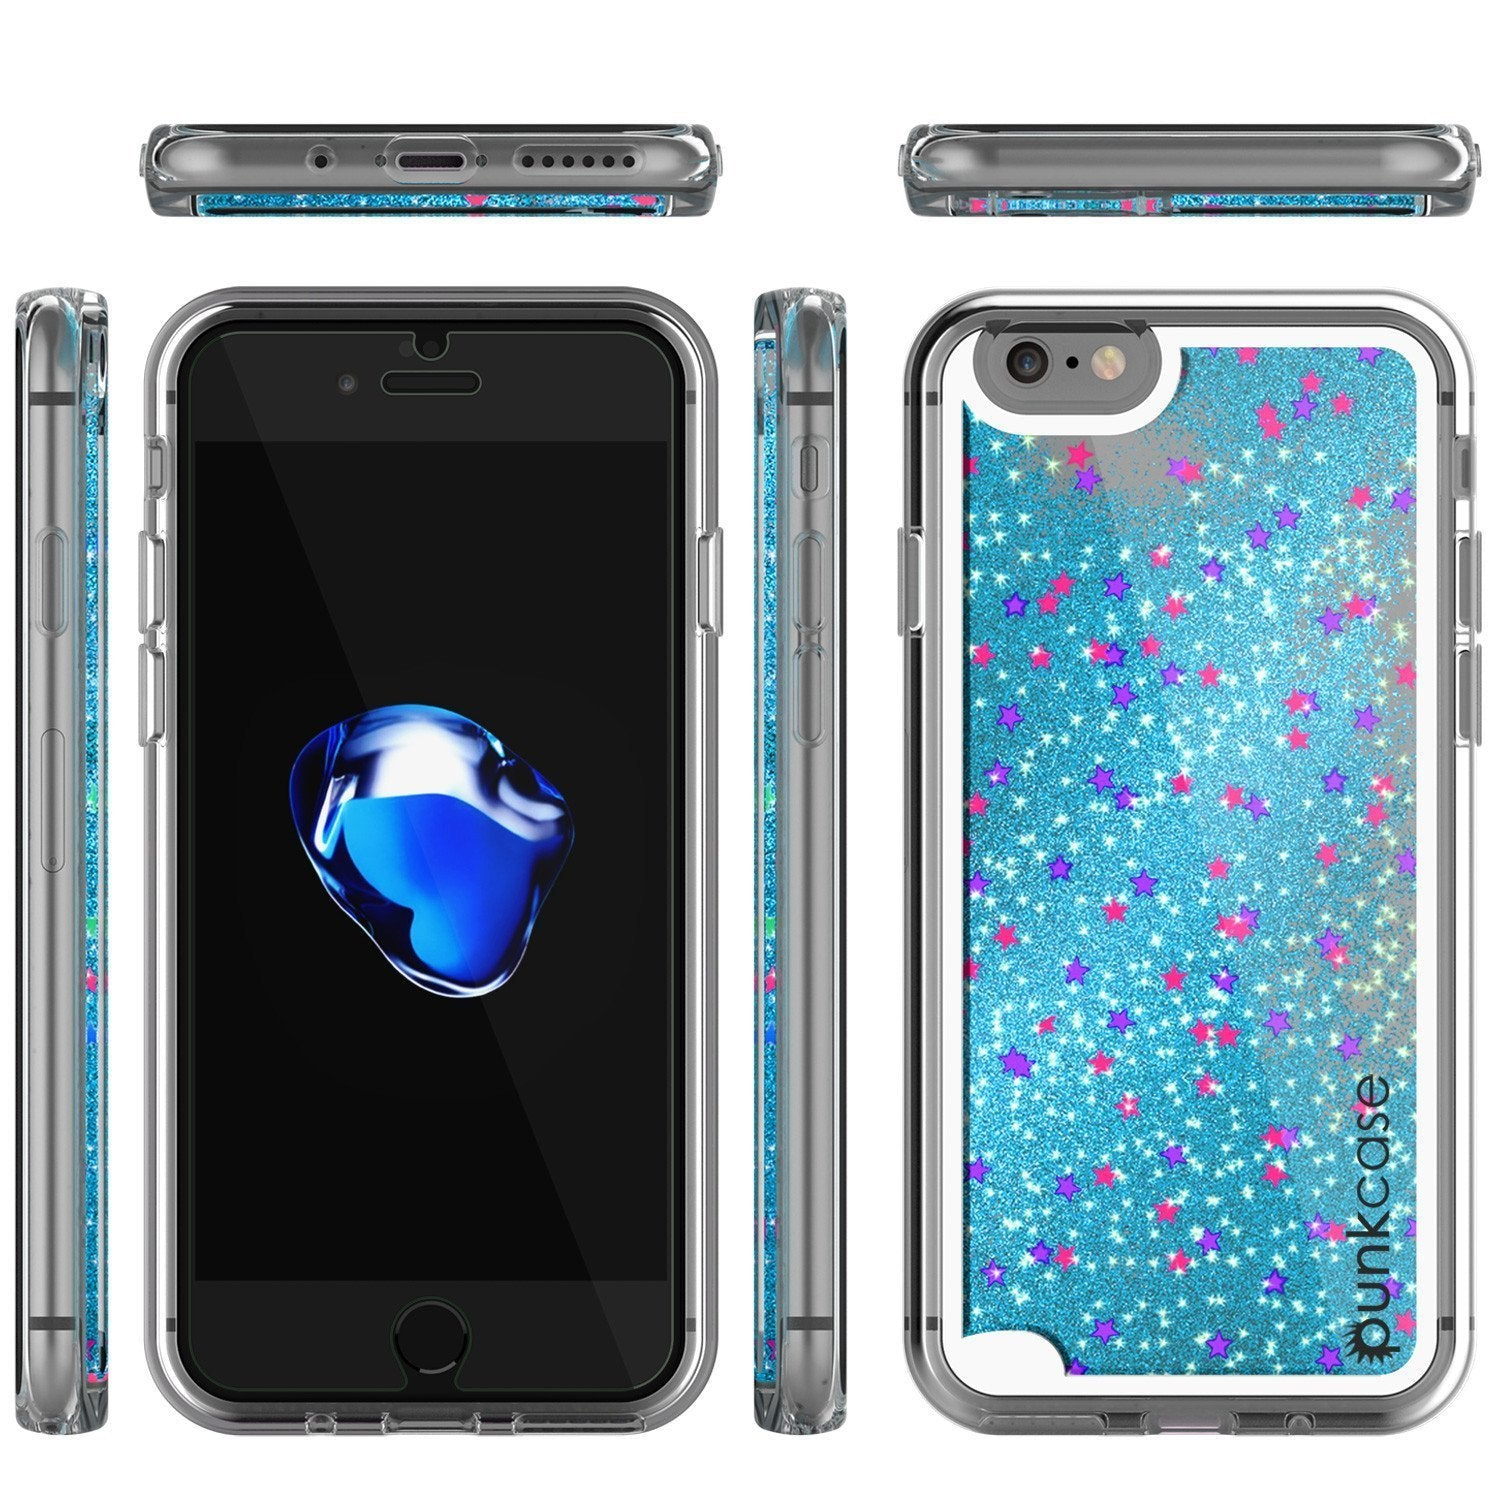 iPhone 8 Case, PunkCase Liquid Teal, Floating Glitter Cover Series